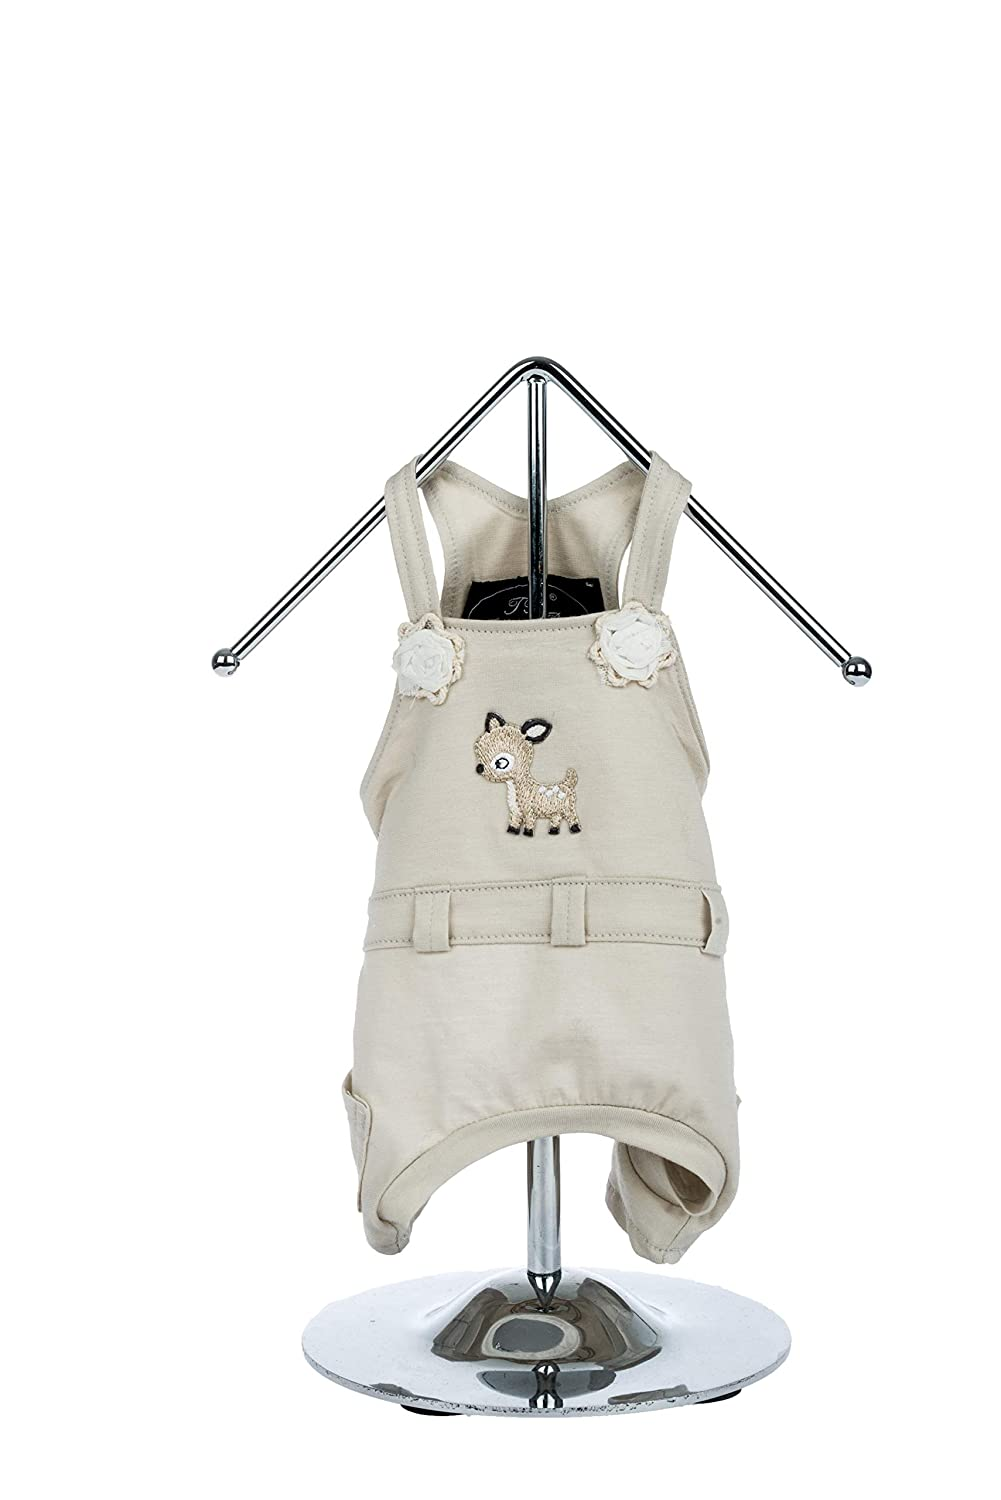 Trilly tutti Brilli 15-BIANCOS.BEIXS Biancospino Dungarees with Thermal Application Cerbiat and Flowers, XS, Beige